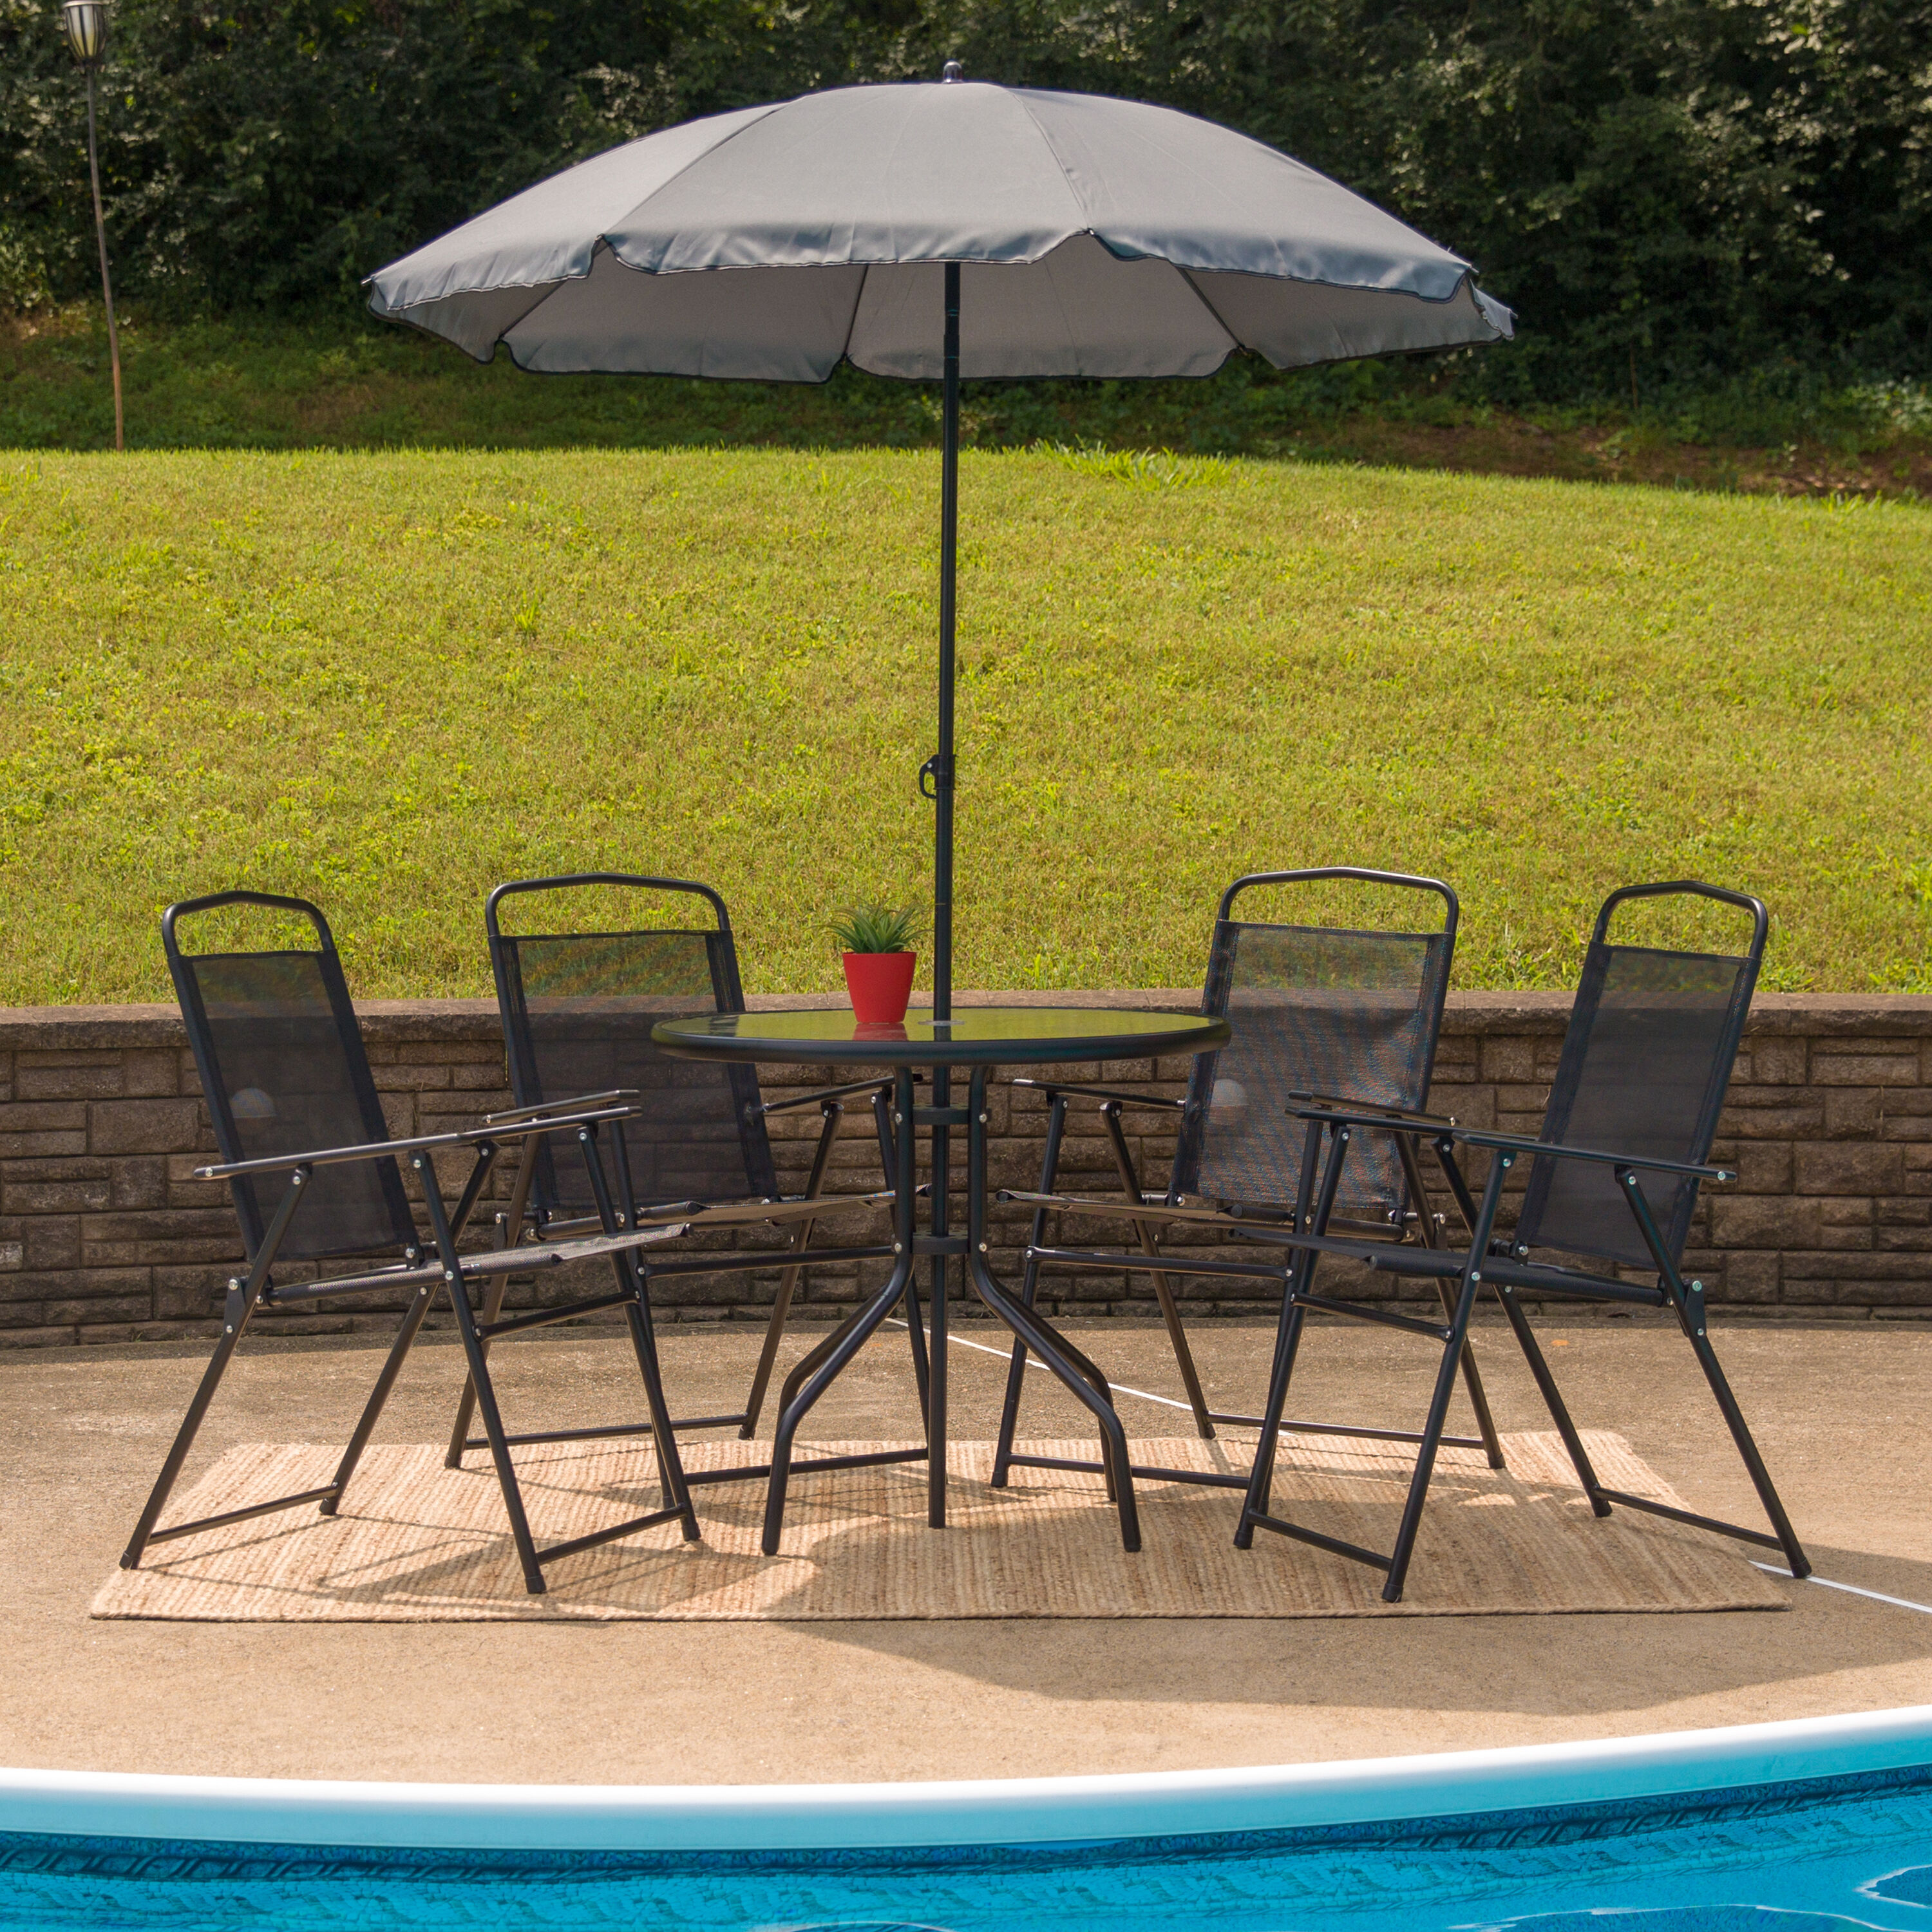 Beau ... Our Nantucket 6 Piece Black Patio Garden Set With Table, Umbrella And 4  Folding Chairs ...